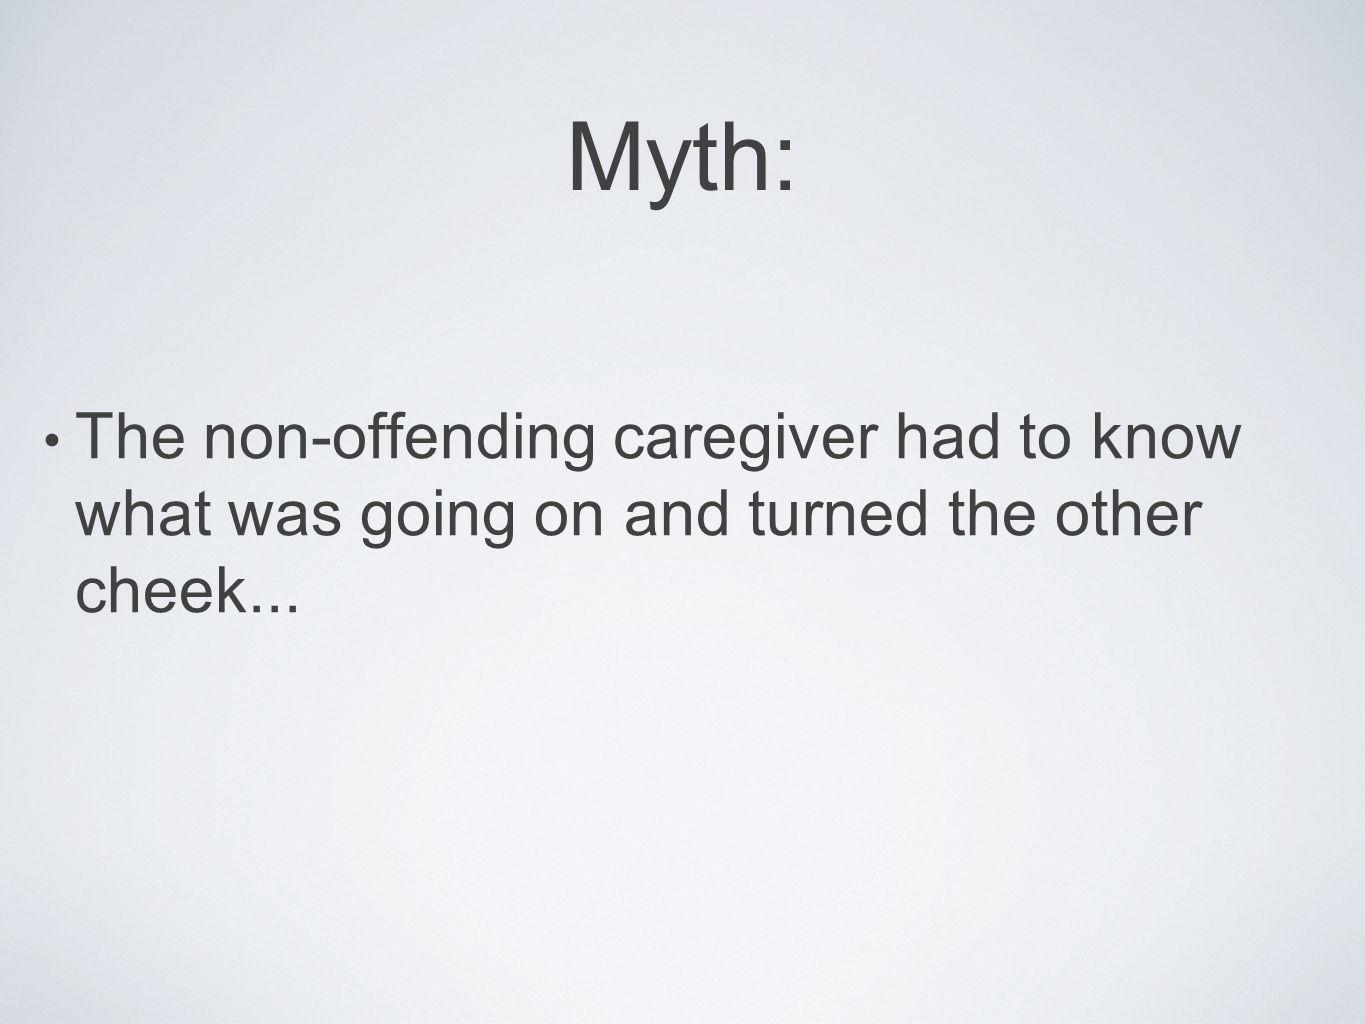 Myth: The non-offending caregiver had to know what was going on and turned the other cheek...